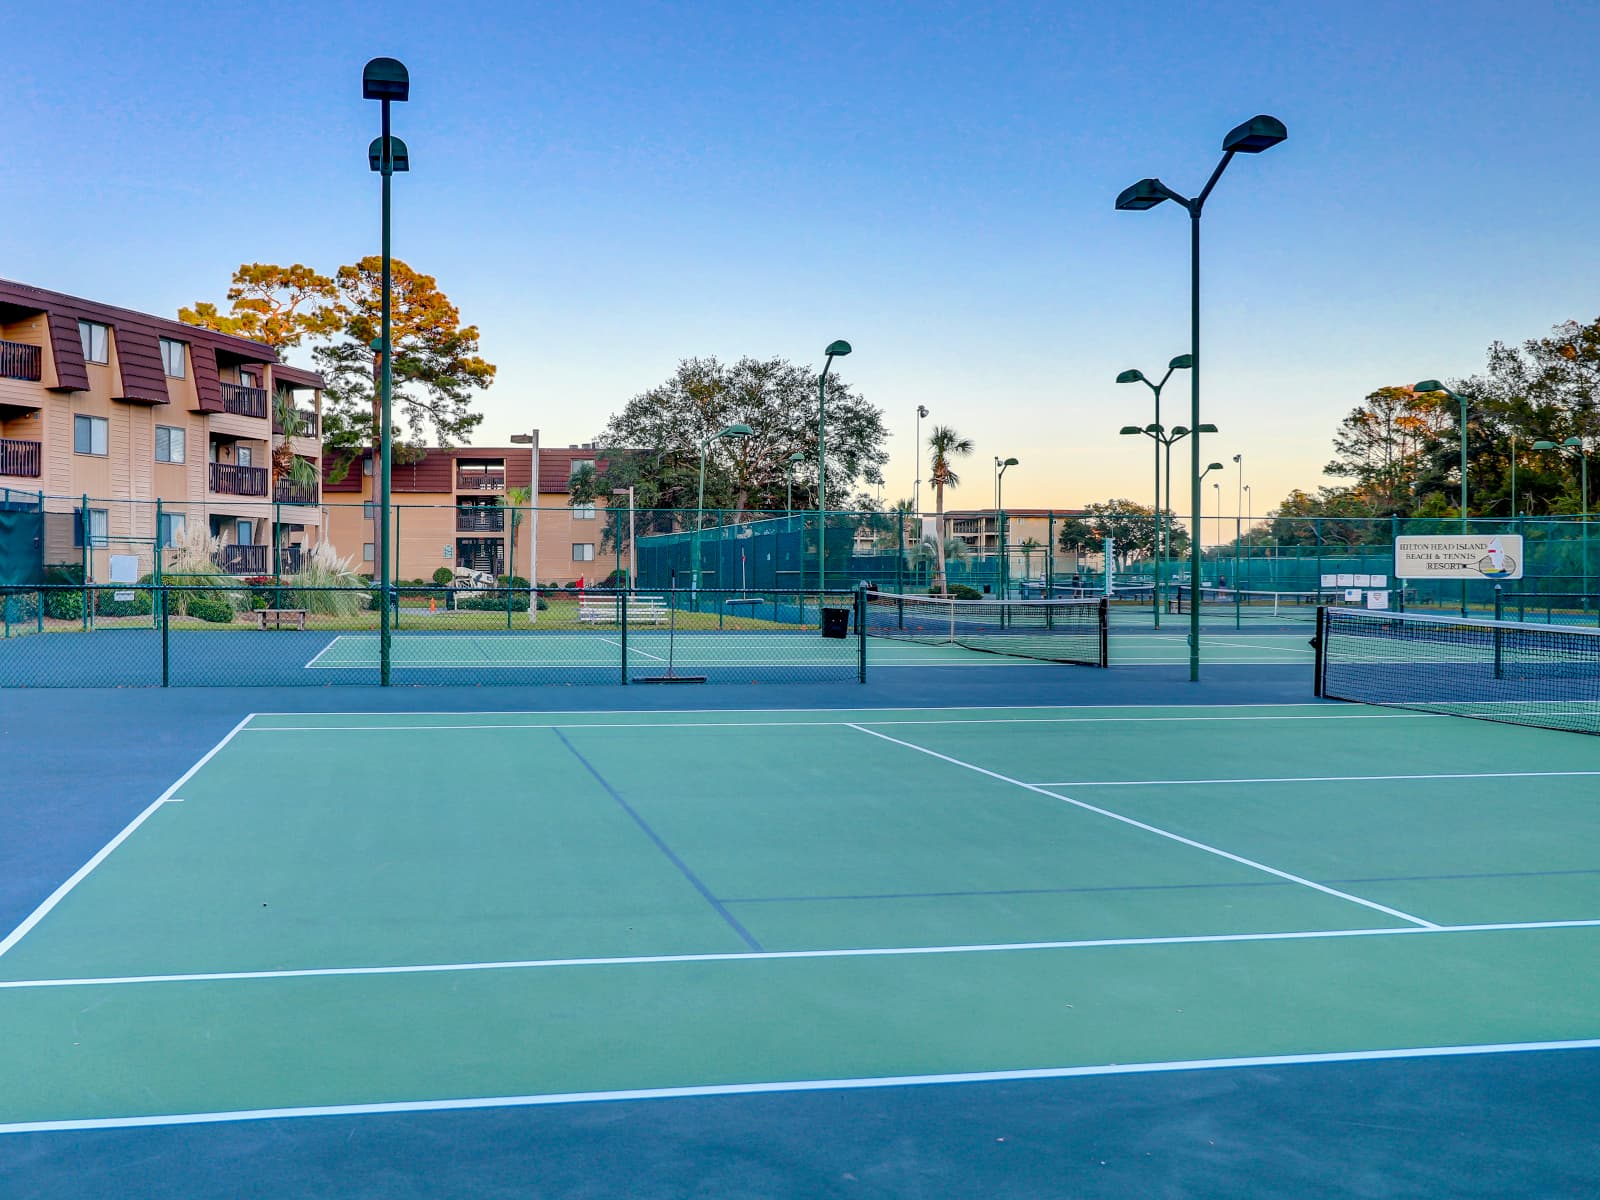 Hilton Head Island Beach & Tennis Resort - one of the best tennis resorts for your tennis holidays in South Carolina